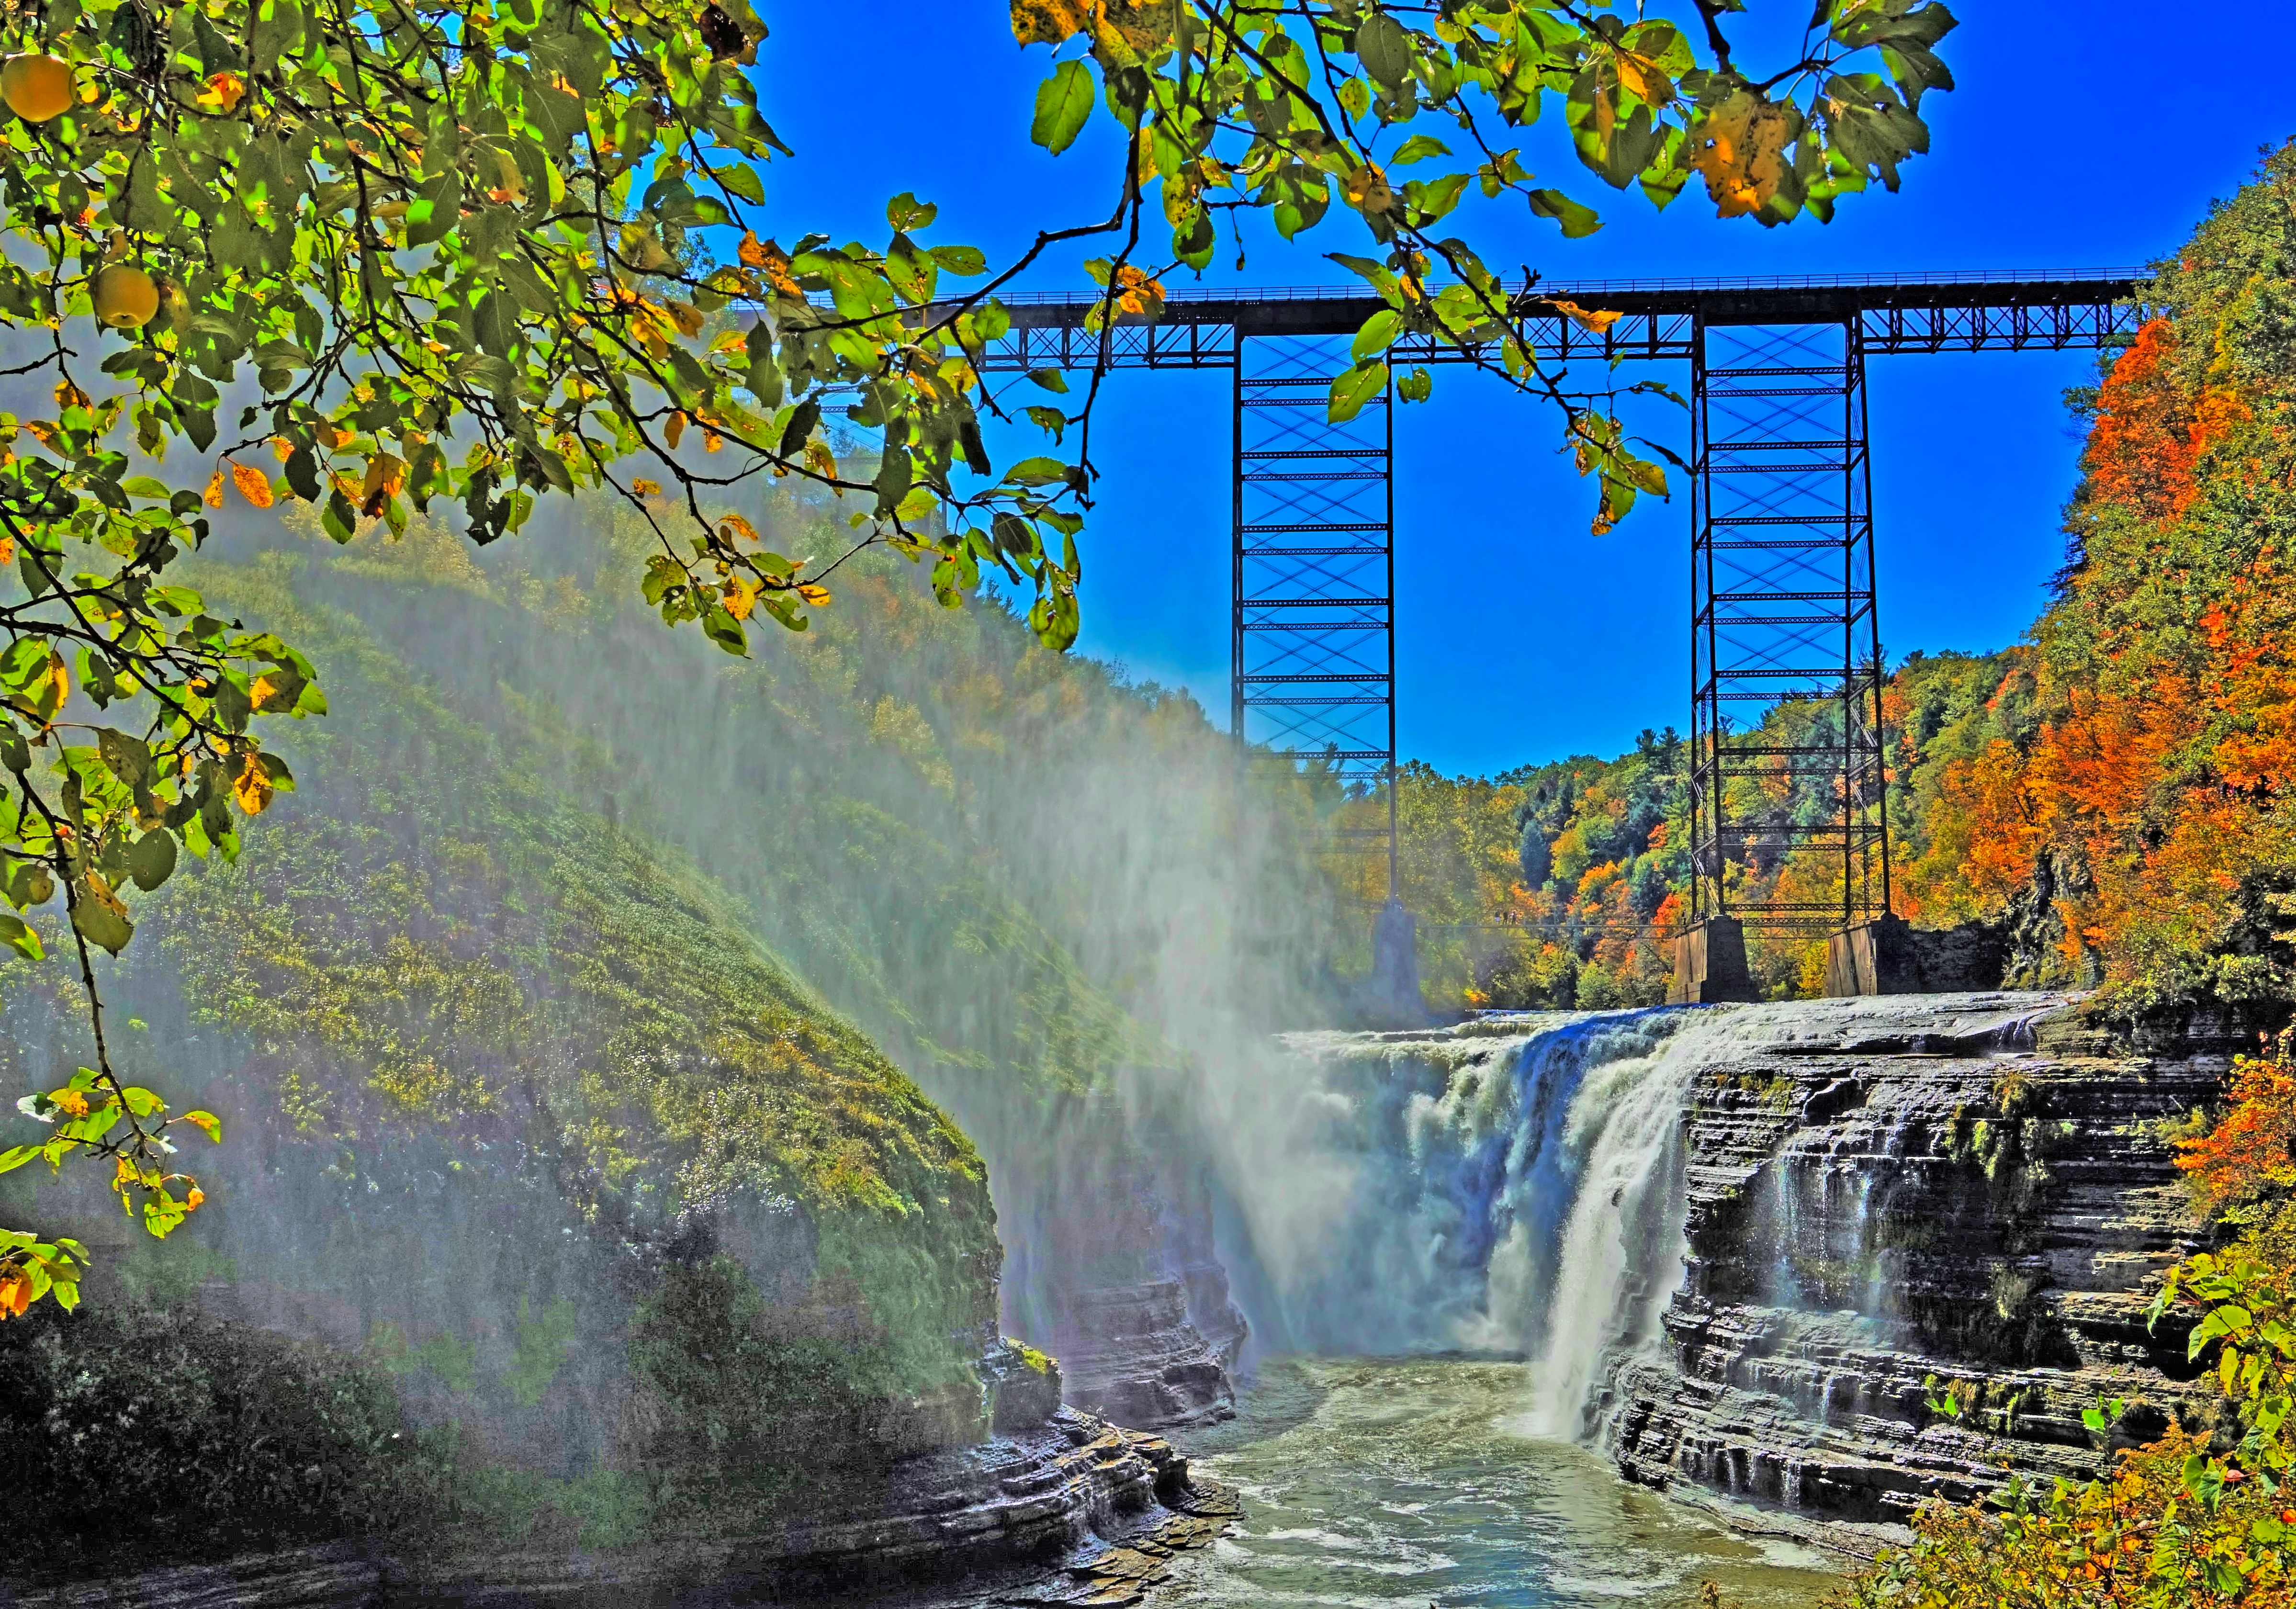 The Genesee Arch Bridge is a steel arch railroad bridge over the Genesee River in Letchworth State Park, Livingston County, New York.